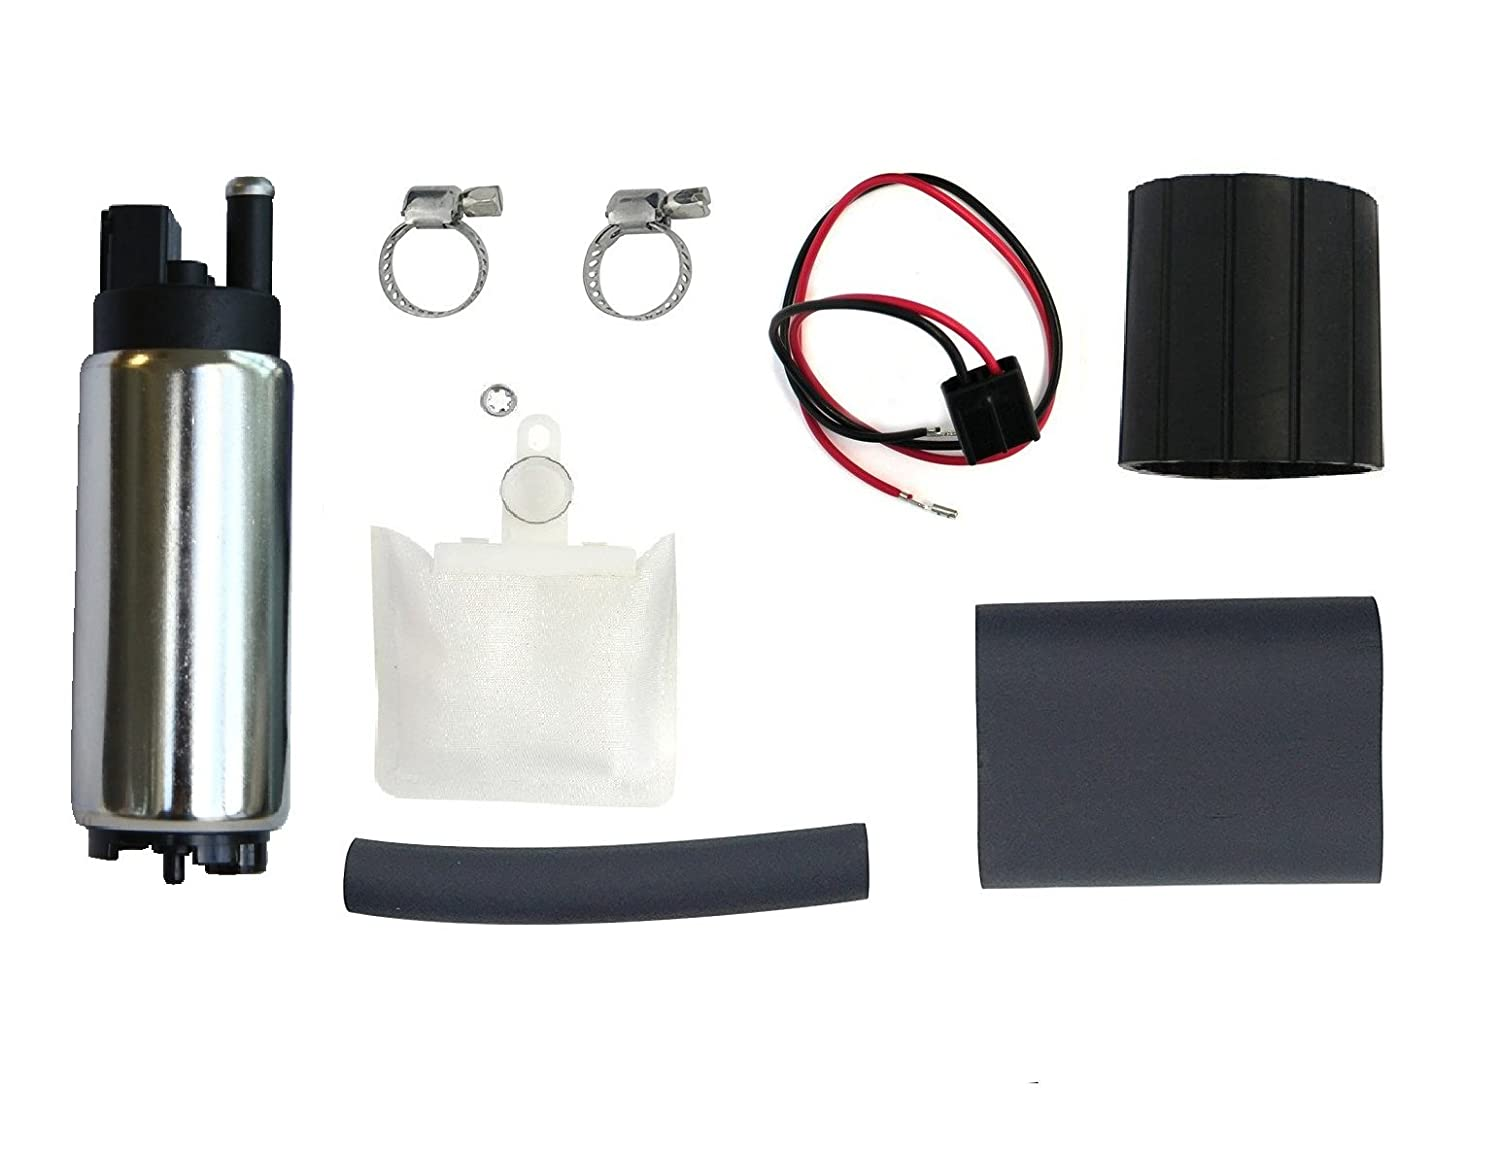 Topscope 255lph High Flow Electric Intank Fuel Pump With 93 Toyota T100 Wiring Installation Kit Automotive